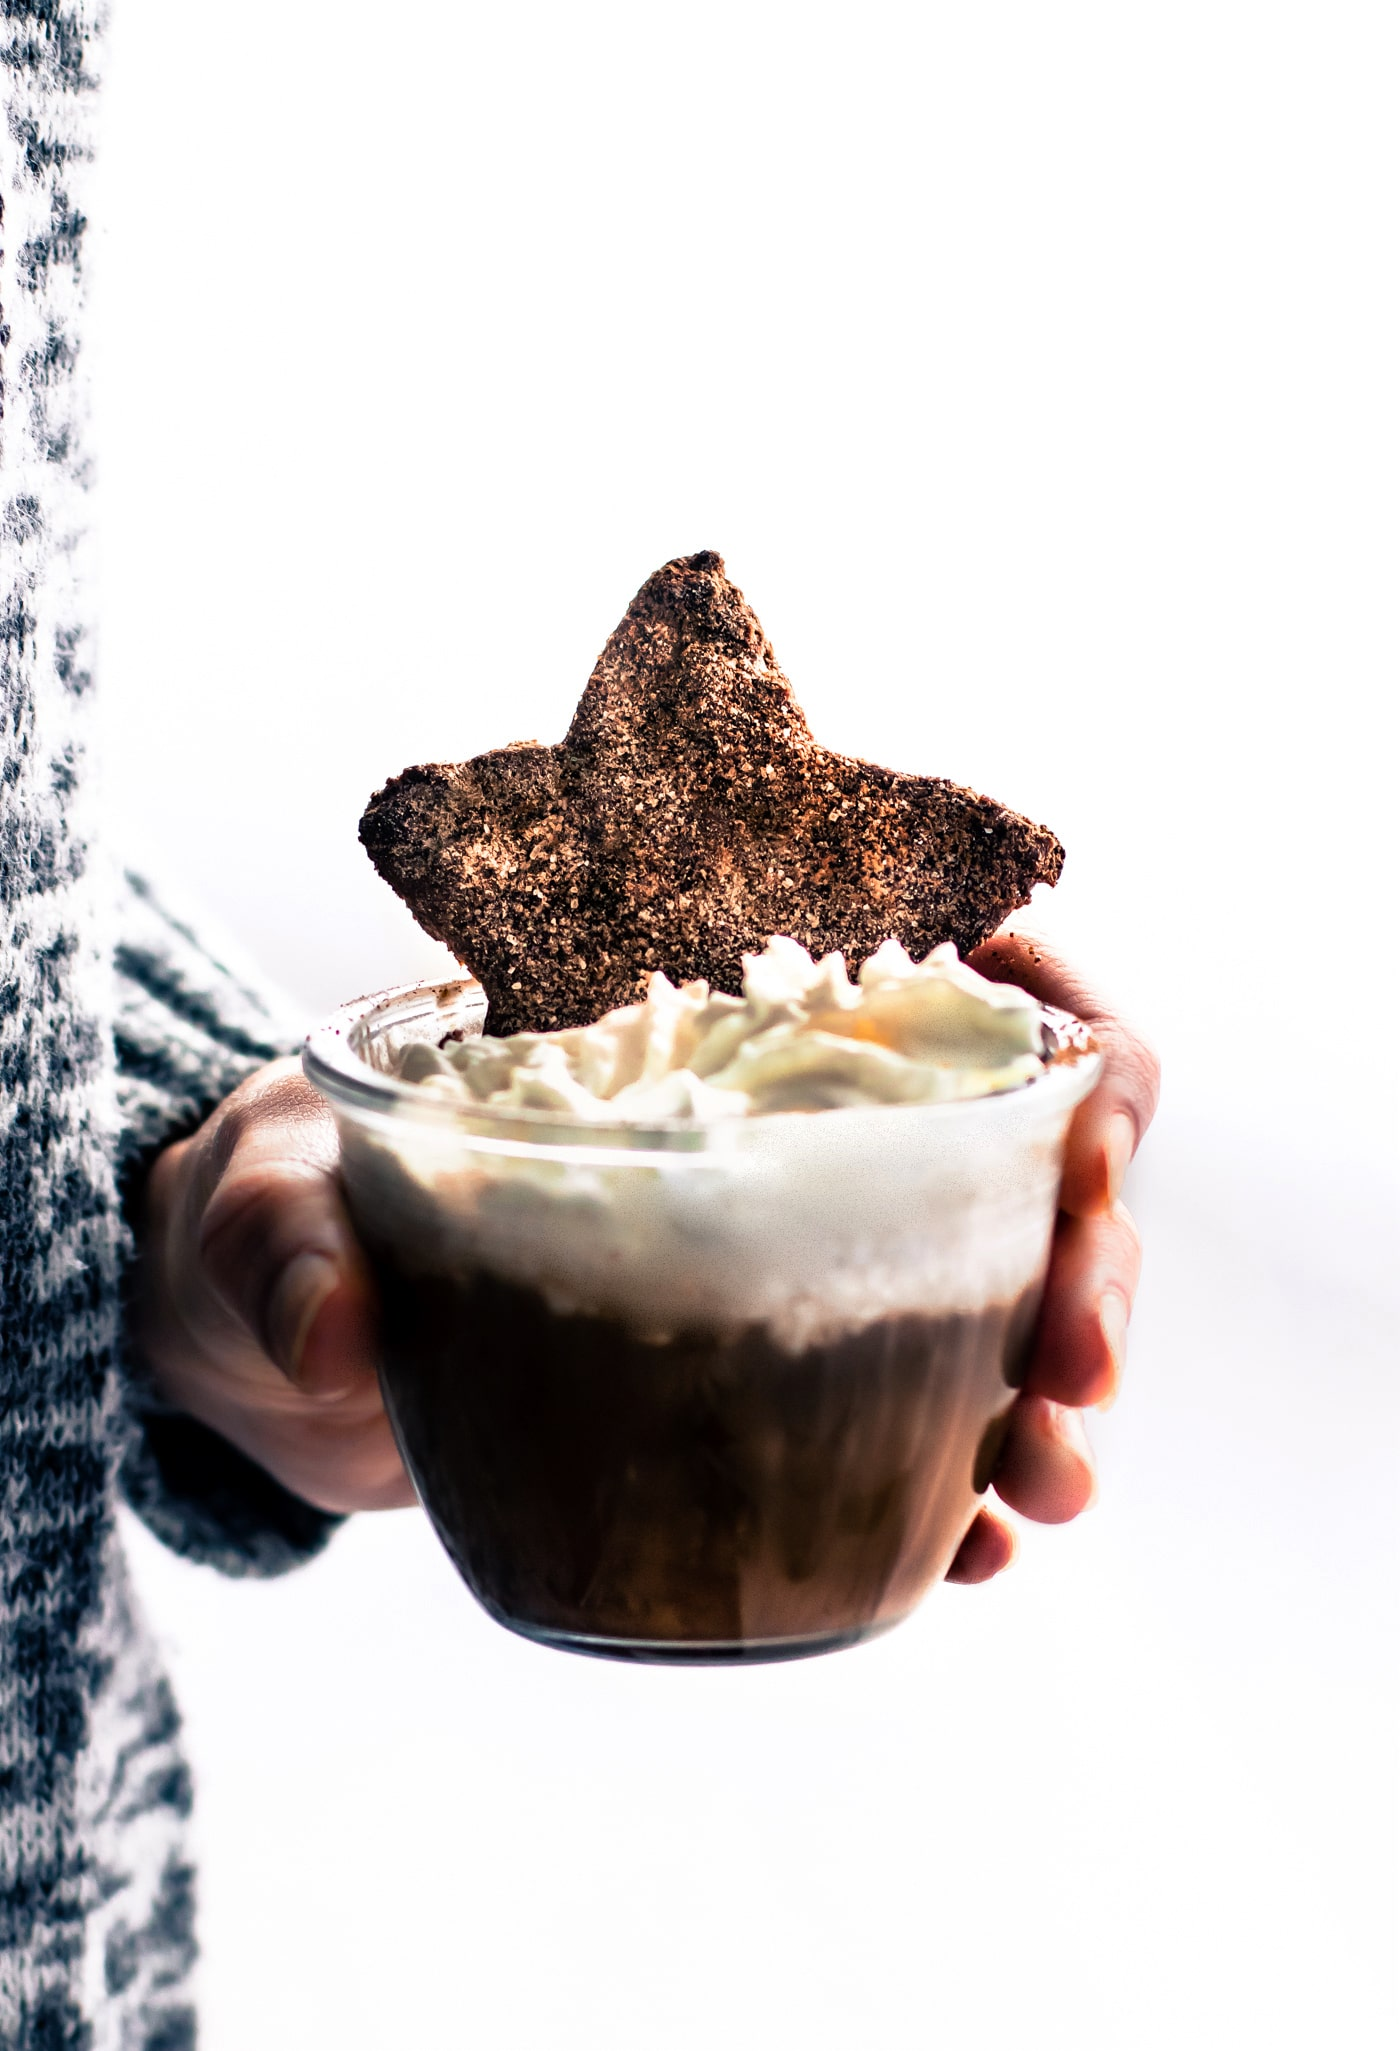 a mug of Mexican hot chocolate with a chocolate sugar cookie dipped into it